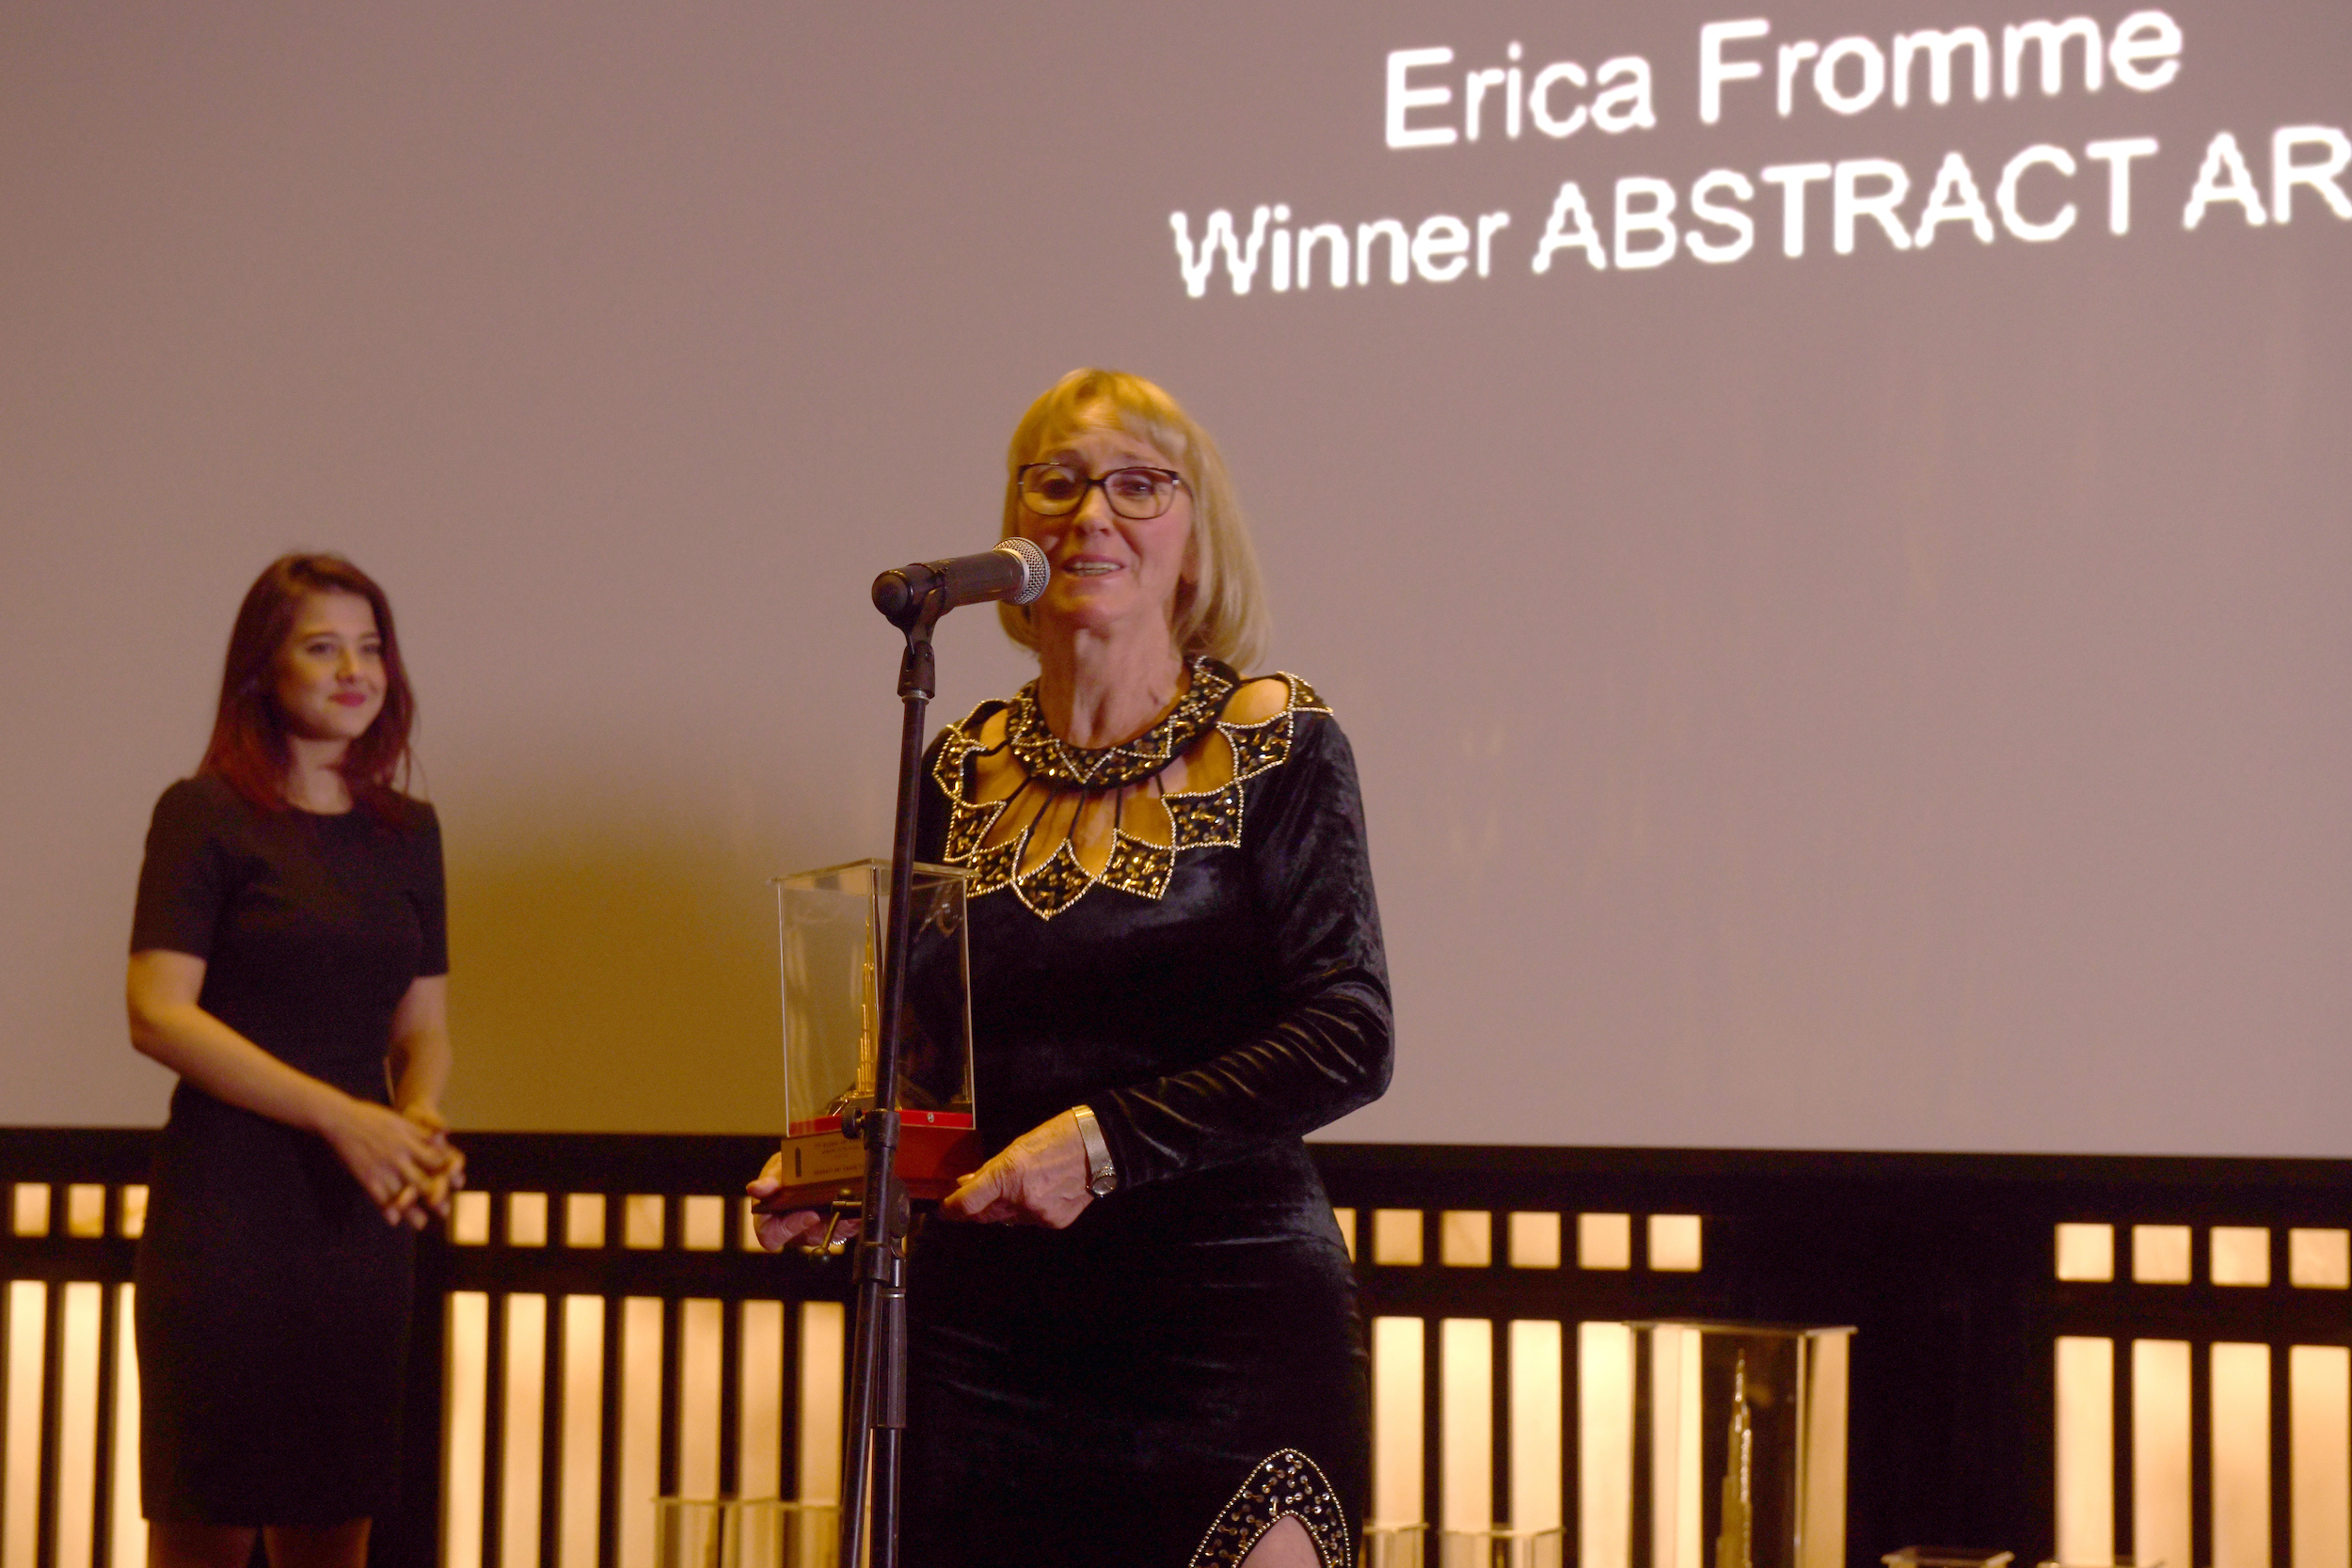 ABSTRACT ART AWARD   ERICA FROMME (GERMANY)